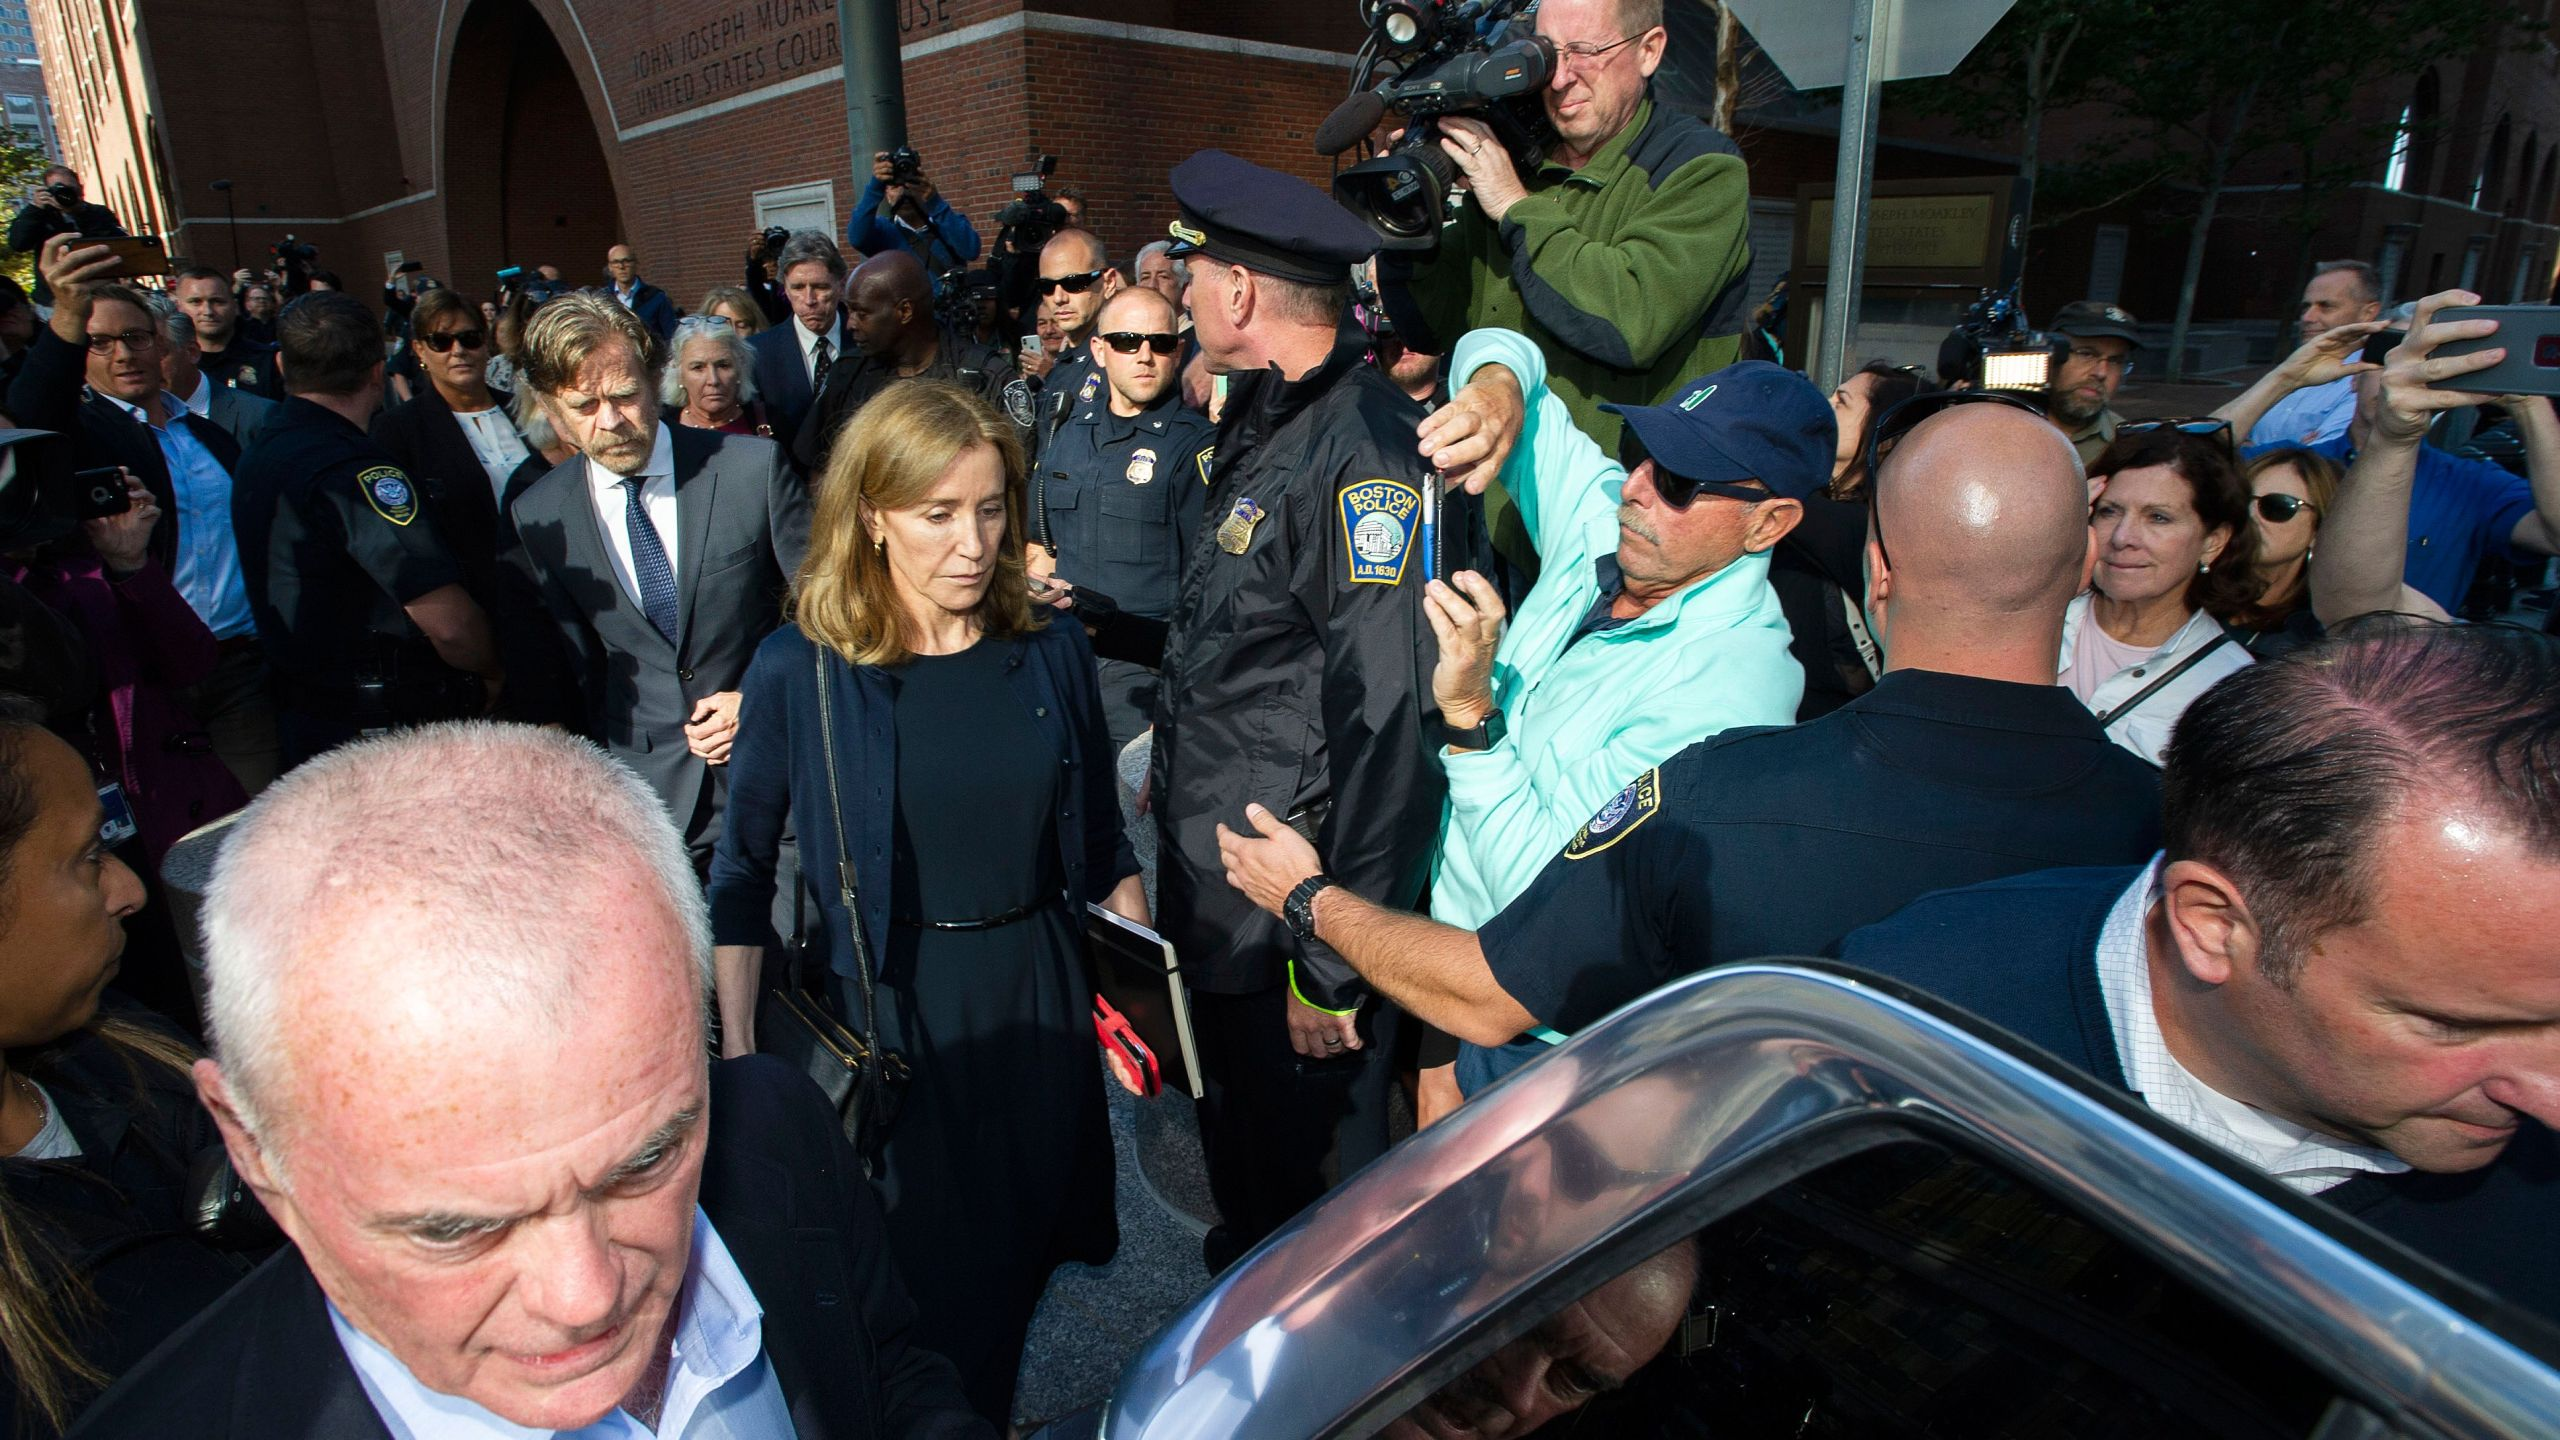 Felicity Huffman, escorted by her husband William H. Macy, leaves the John Joseph Moakley U.S. Courthouse in Boston, where she was sentenced for her role in the college admissions scandal, on Sept. 13, 2019. (Credit: JOSEPH PREZIOSO/AFP/Getty Images)